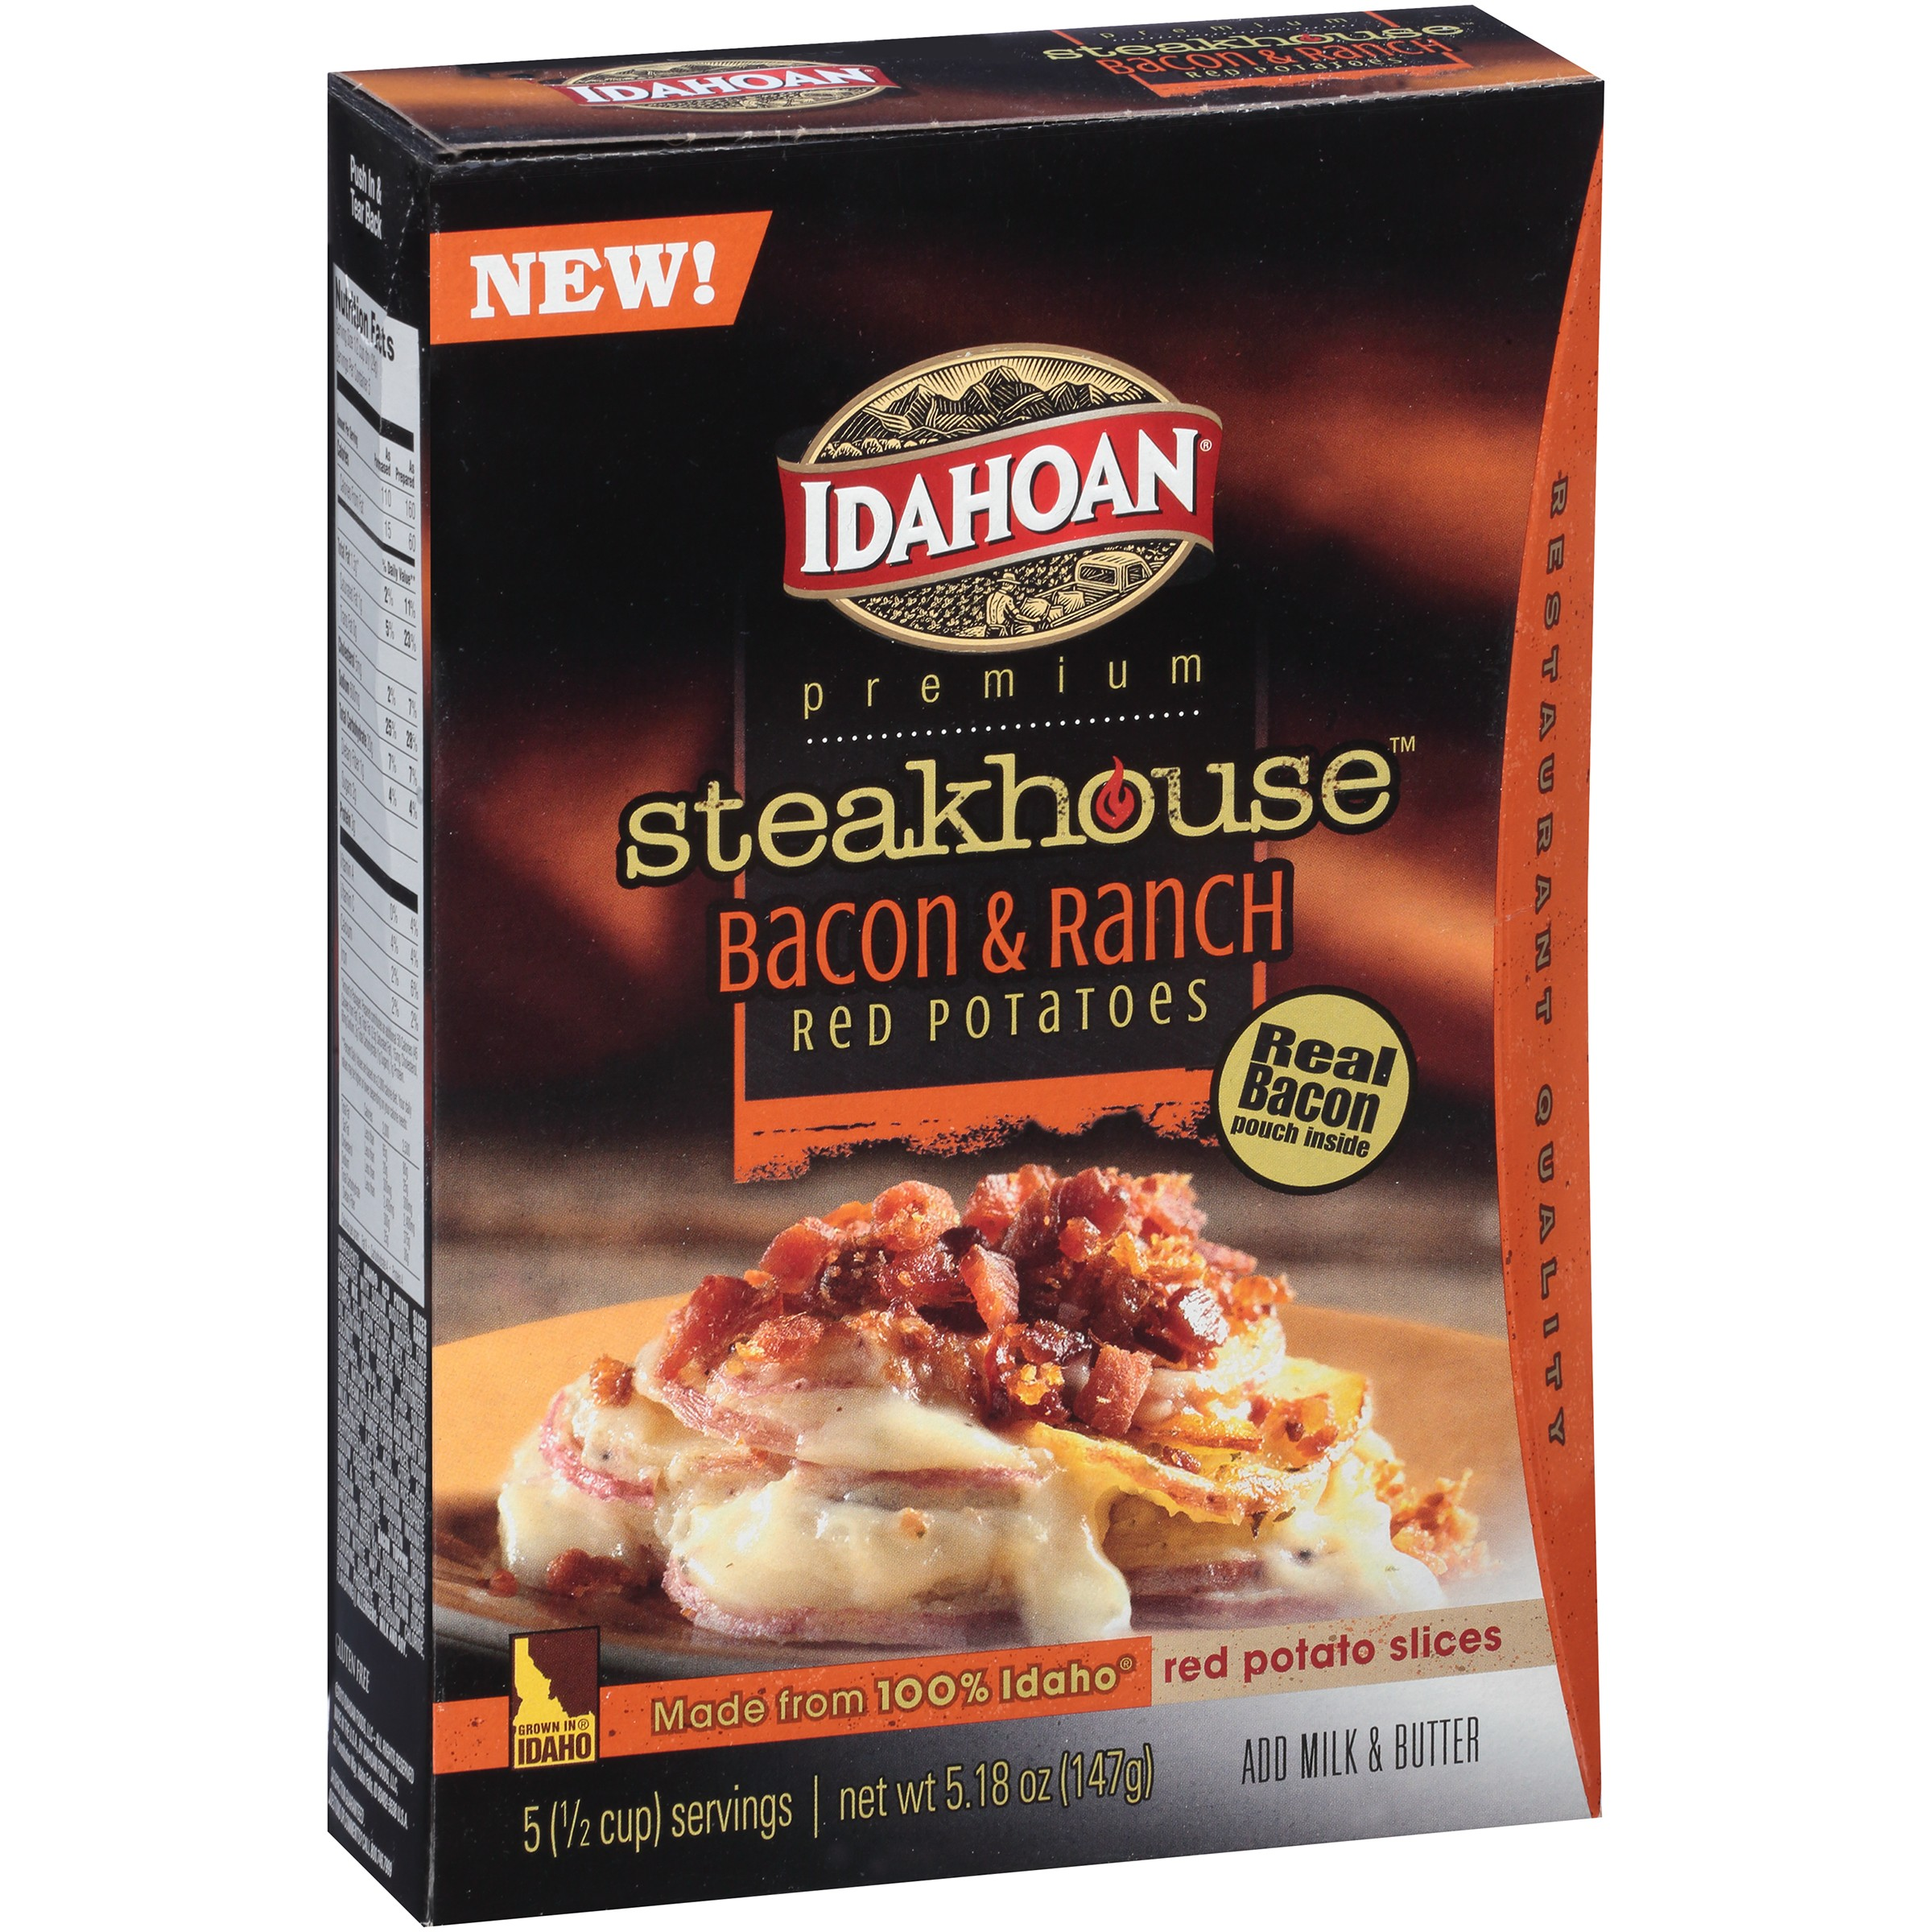 Idahoan Premium Steakhouse Bacon & Ranch Red Potatoes, 5.18 oz by Idahoan Foods, LLC